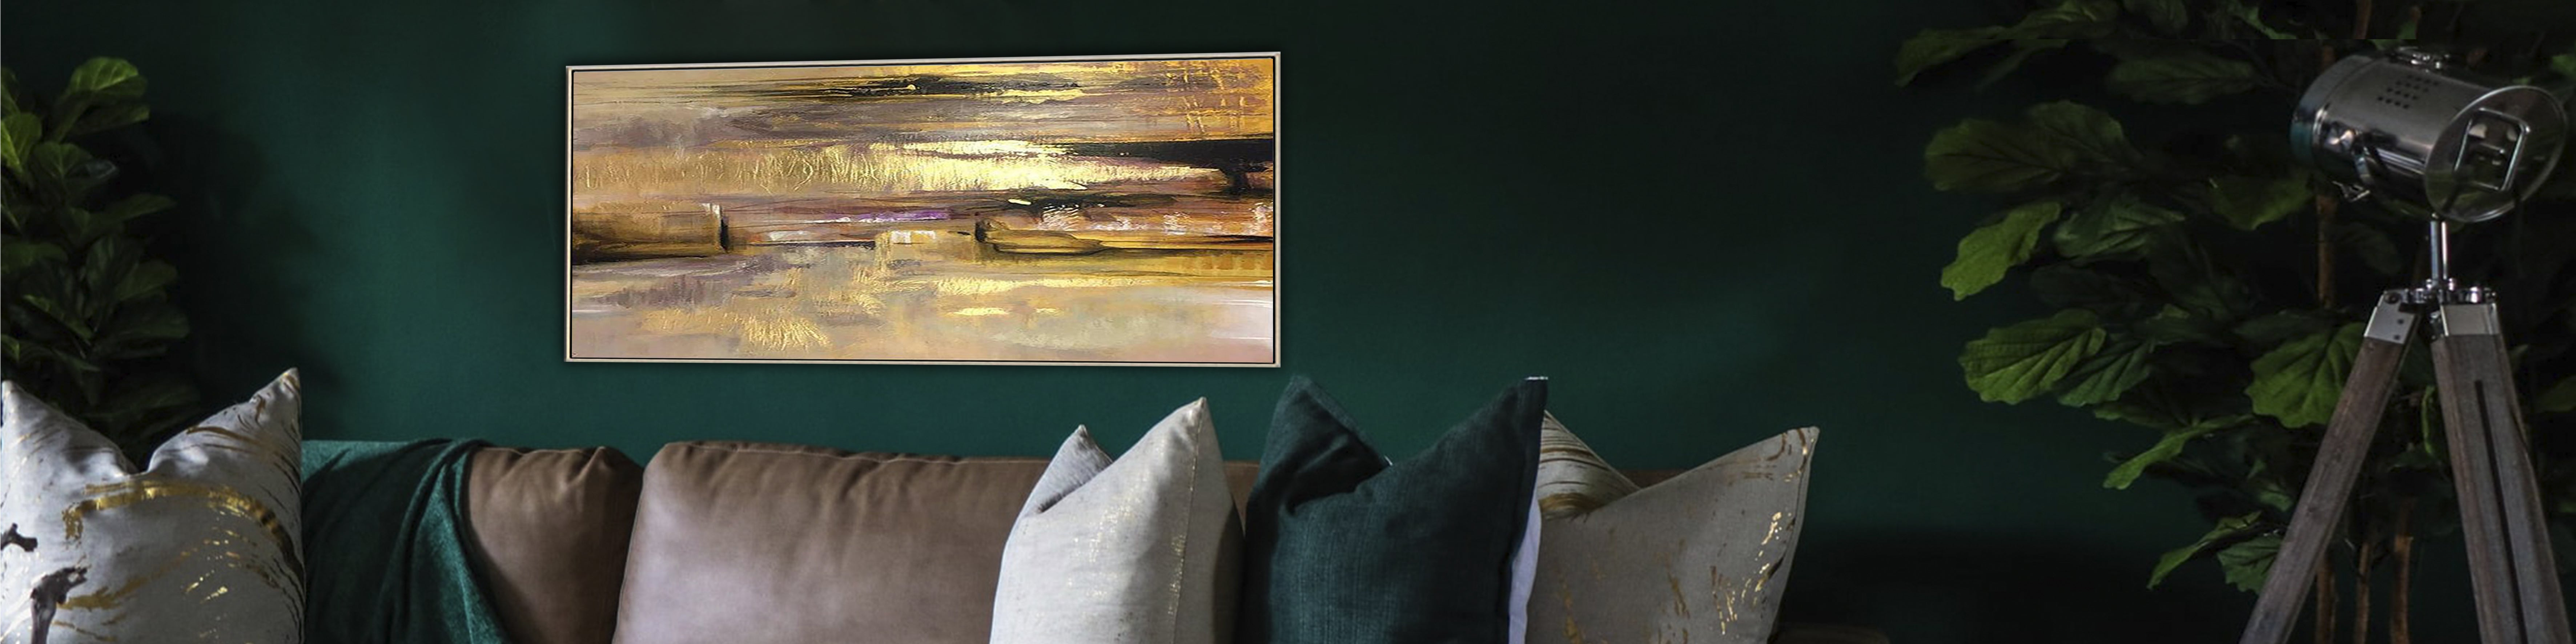 Transform your flat into a glamorous dream: how to decorate a living room with art canvas painting